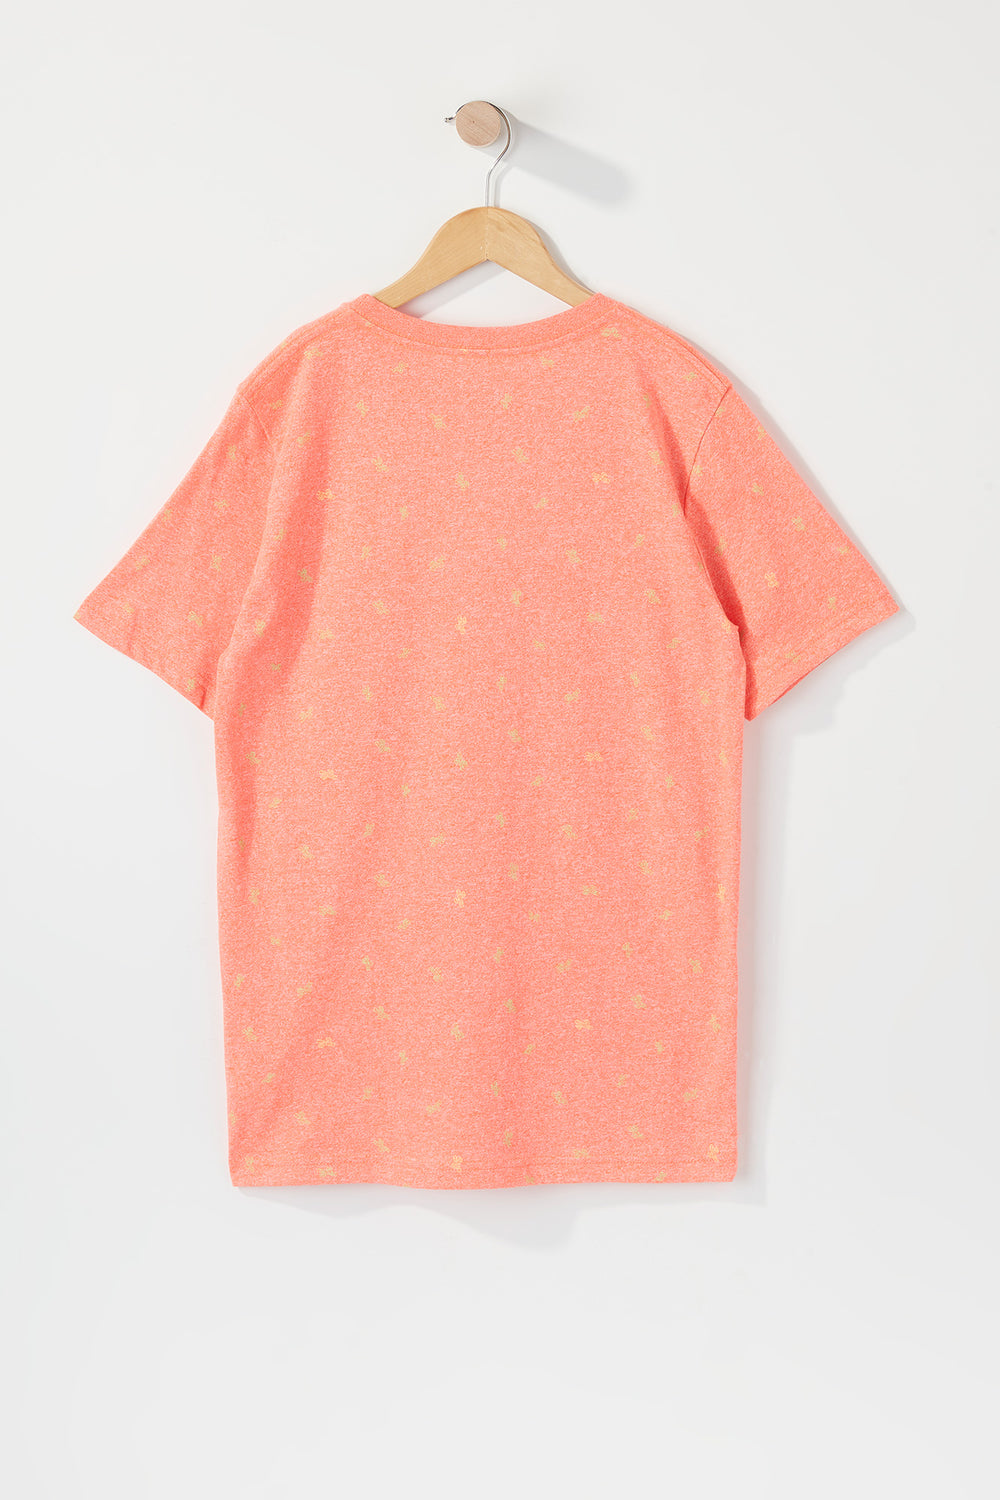 T-Shirt Avec Motif West49 Garçon Orange